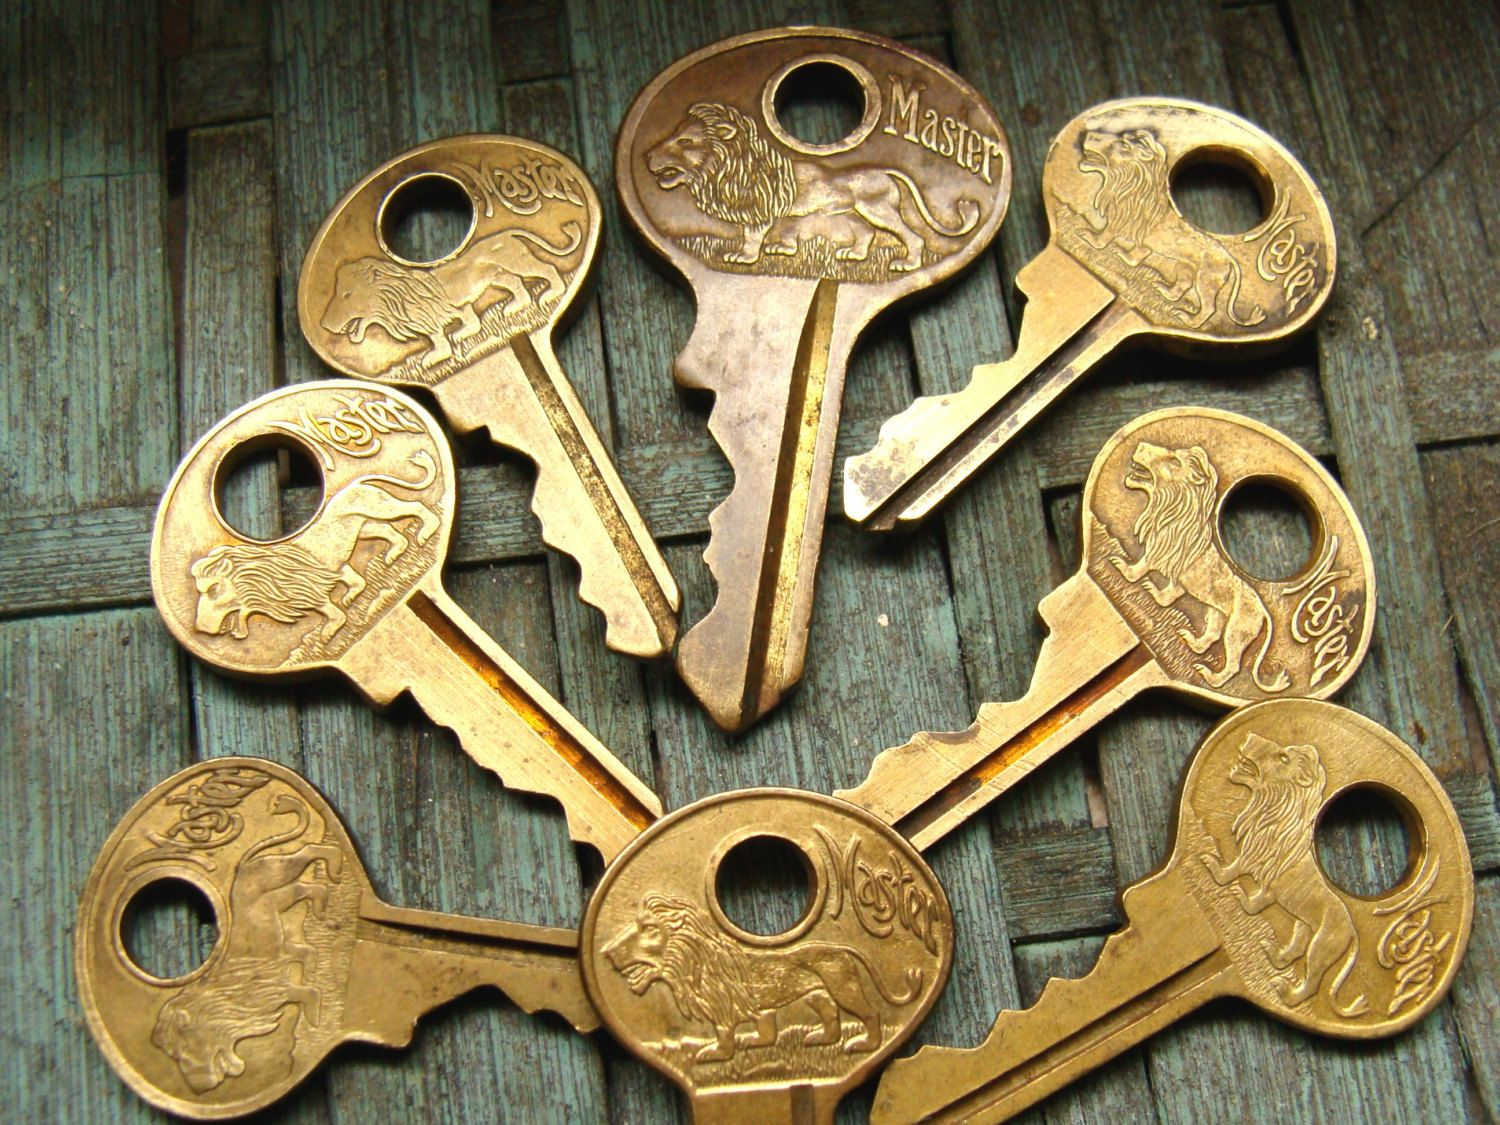 Old Master lock lion key lot - brass antique key collection of 8 ...